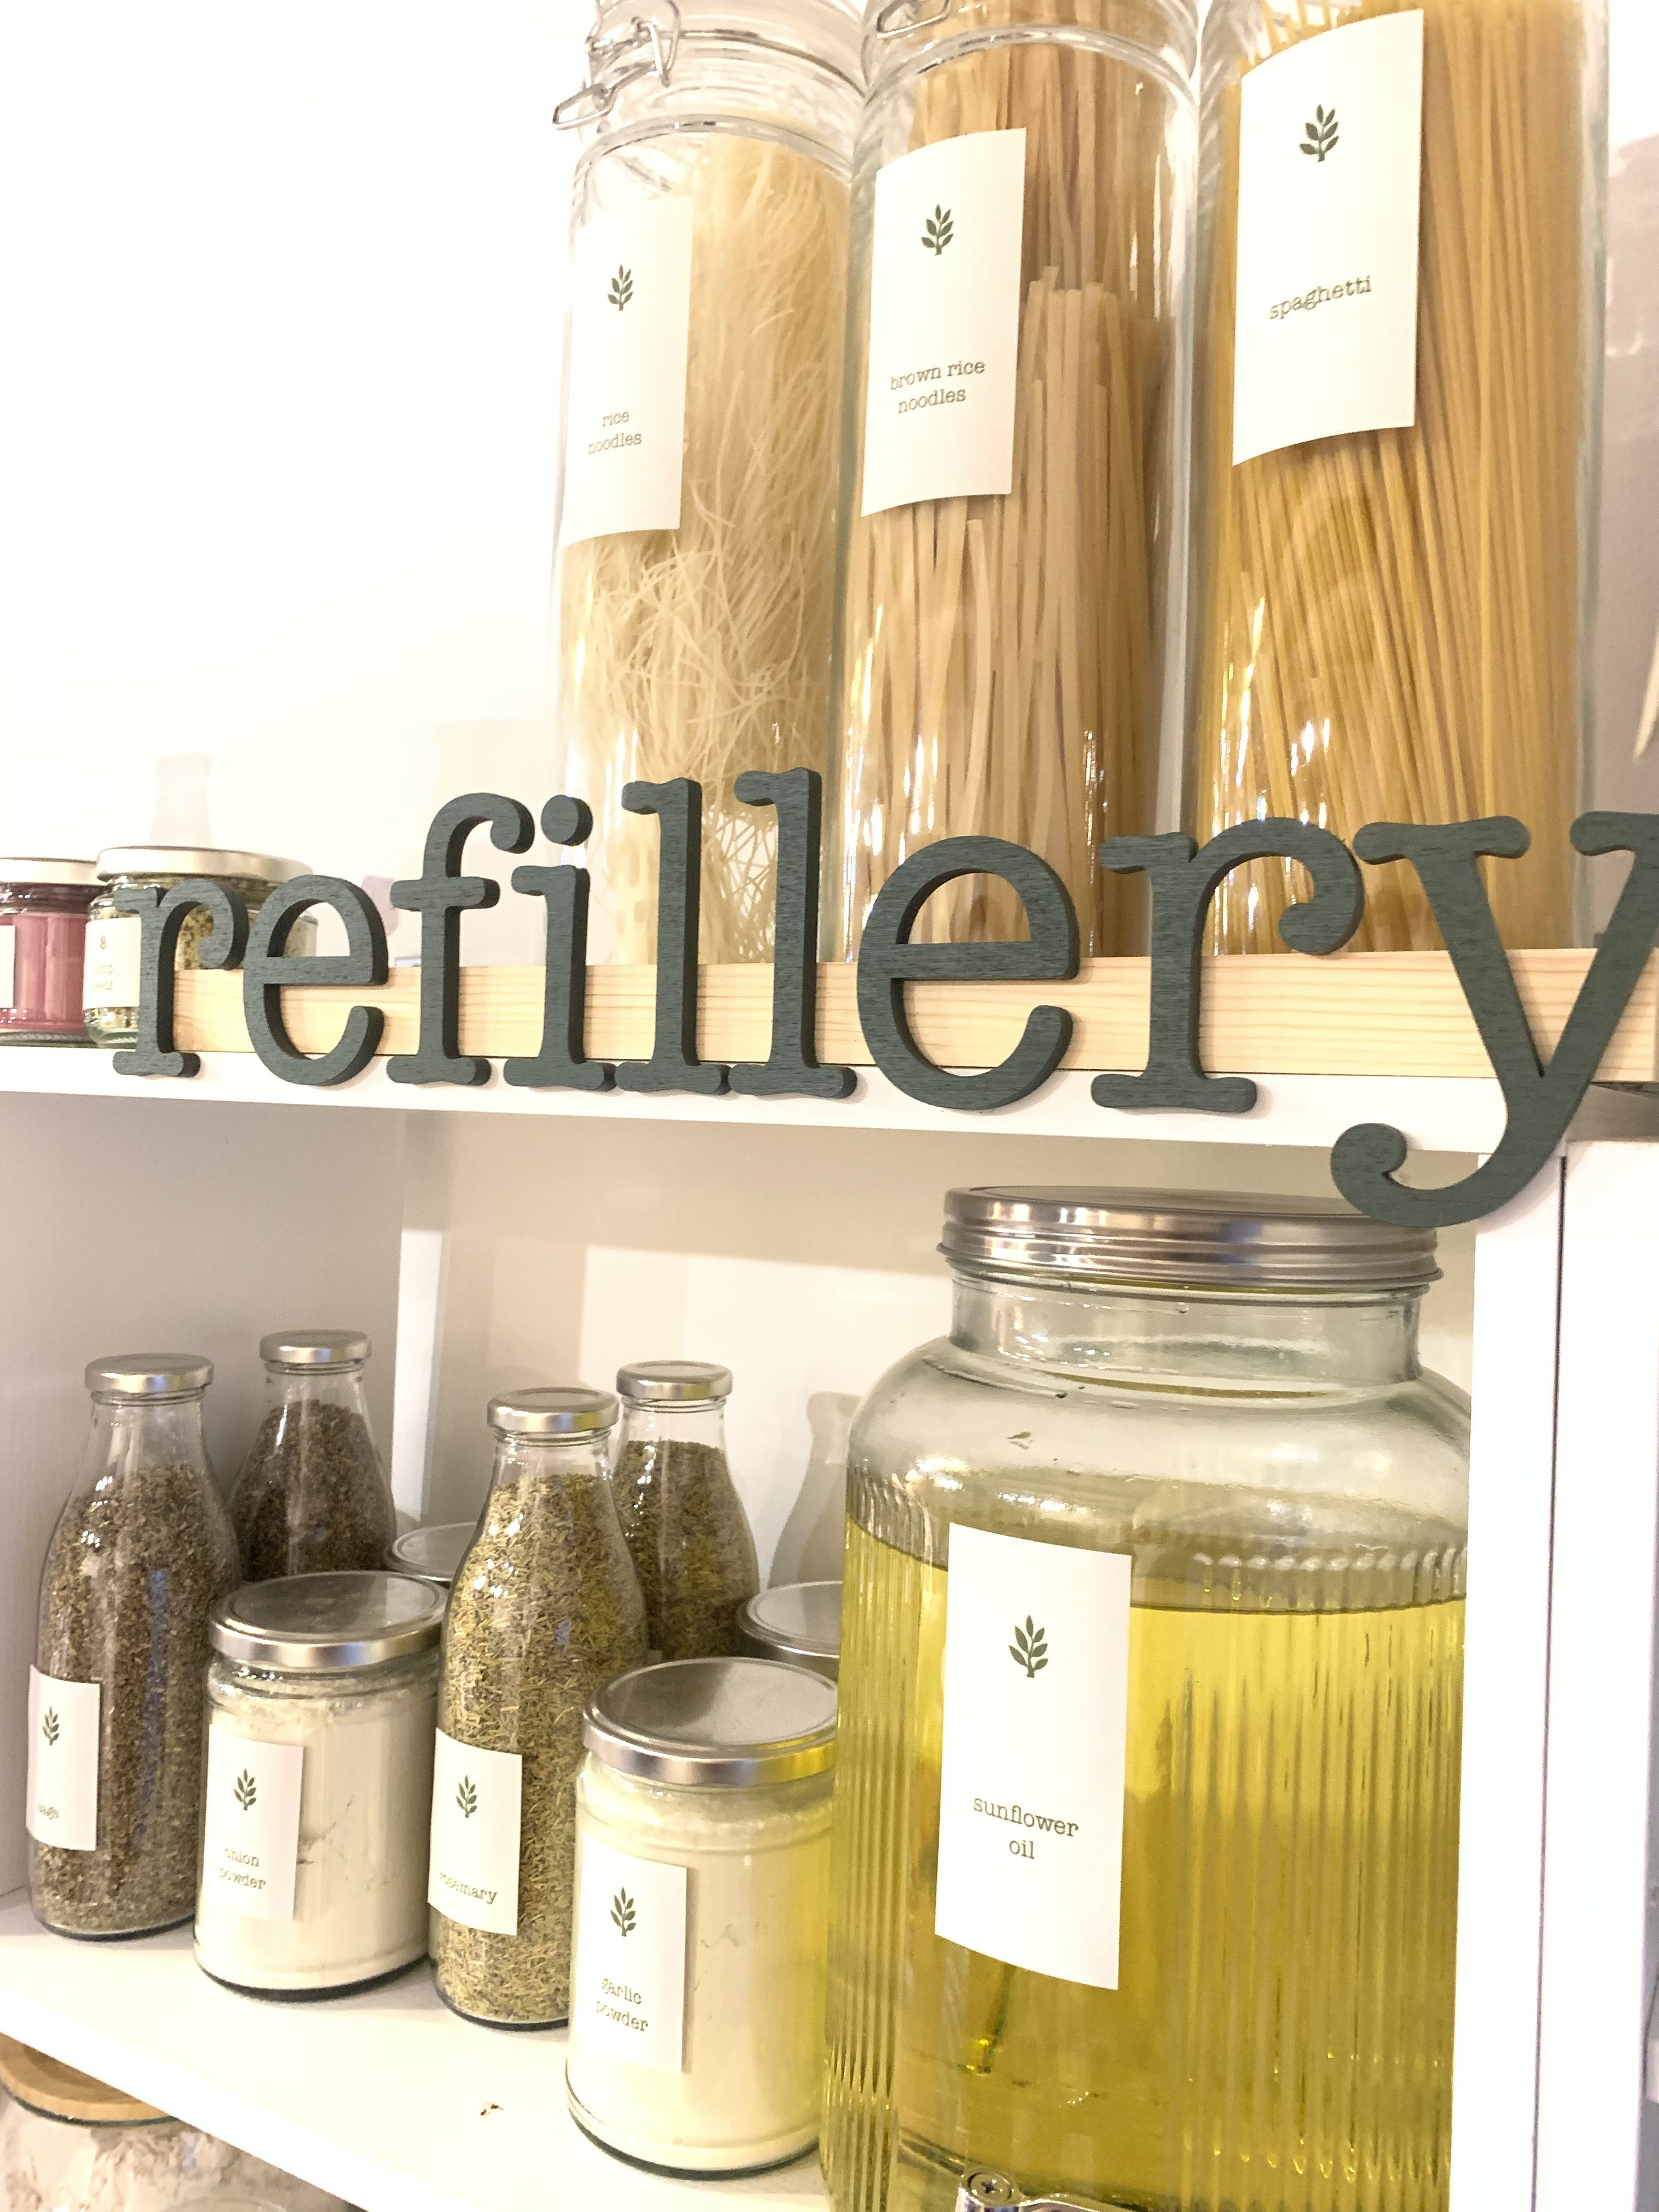 Shop only what you need from our refillery in Lavenham, Suffolk. We have a vast selection of ingredients and eco friendly sustainable products to help reduce waste in the world. We also offer delivery - visit our website for more info. #refill #refillshopping #lavenham #lovelavenham #lavenhamsuffolk #refillery #lshoplocal #sustainable #sustainableshopping #plasticfree #lesswaste #reducereuserecycle #recycling #ingredients #greenliving #greenlife #ecolife #ecoliving #ecolifestyle